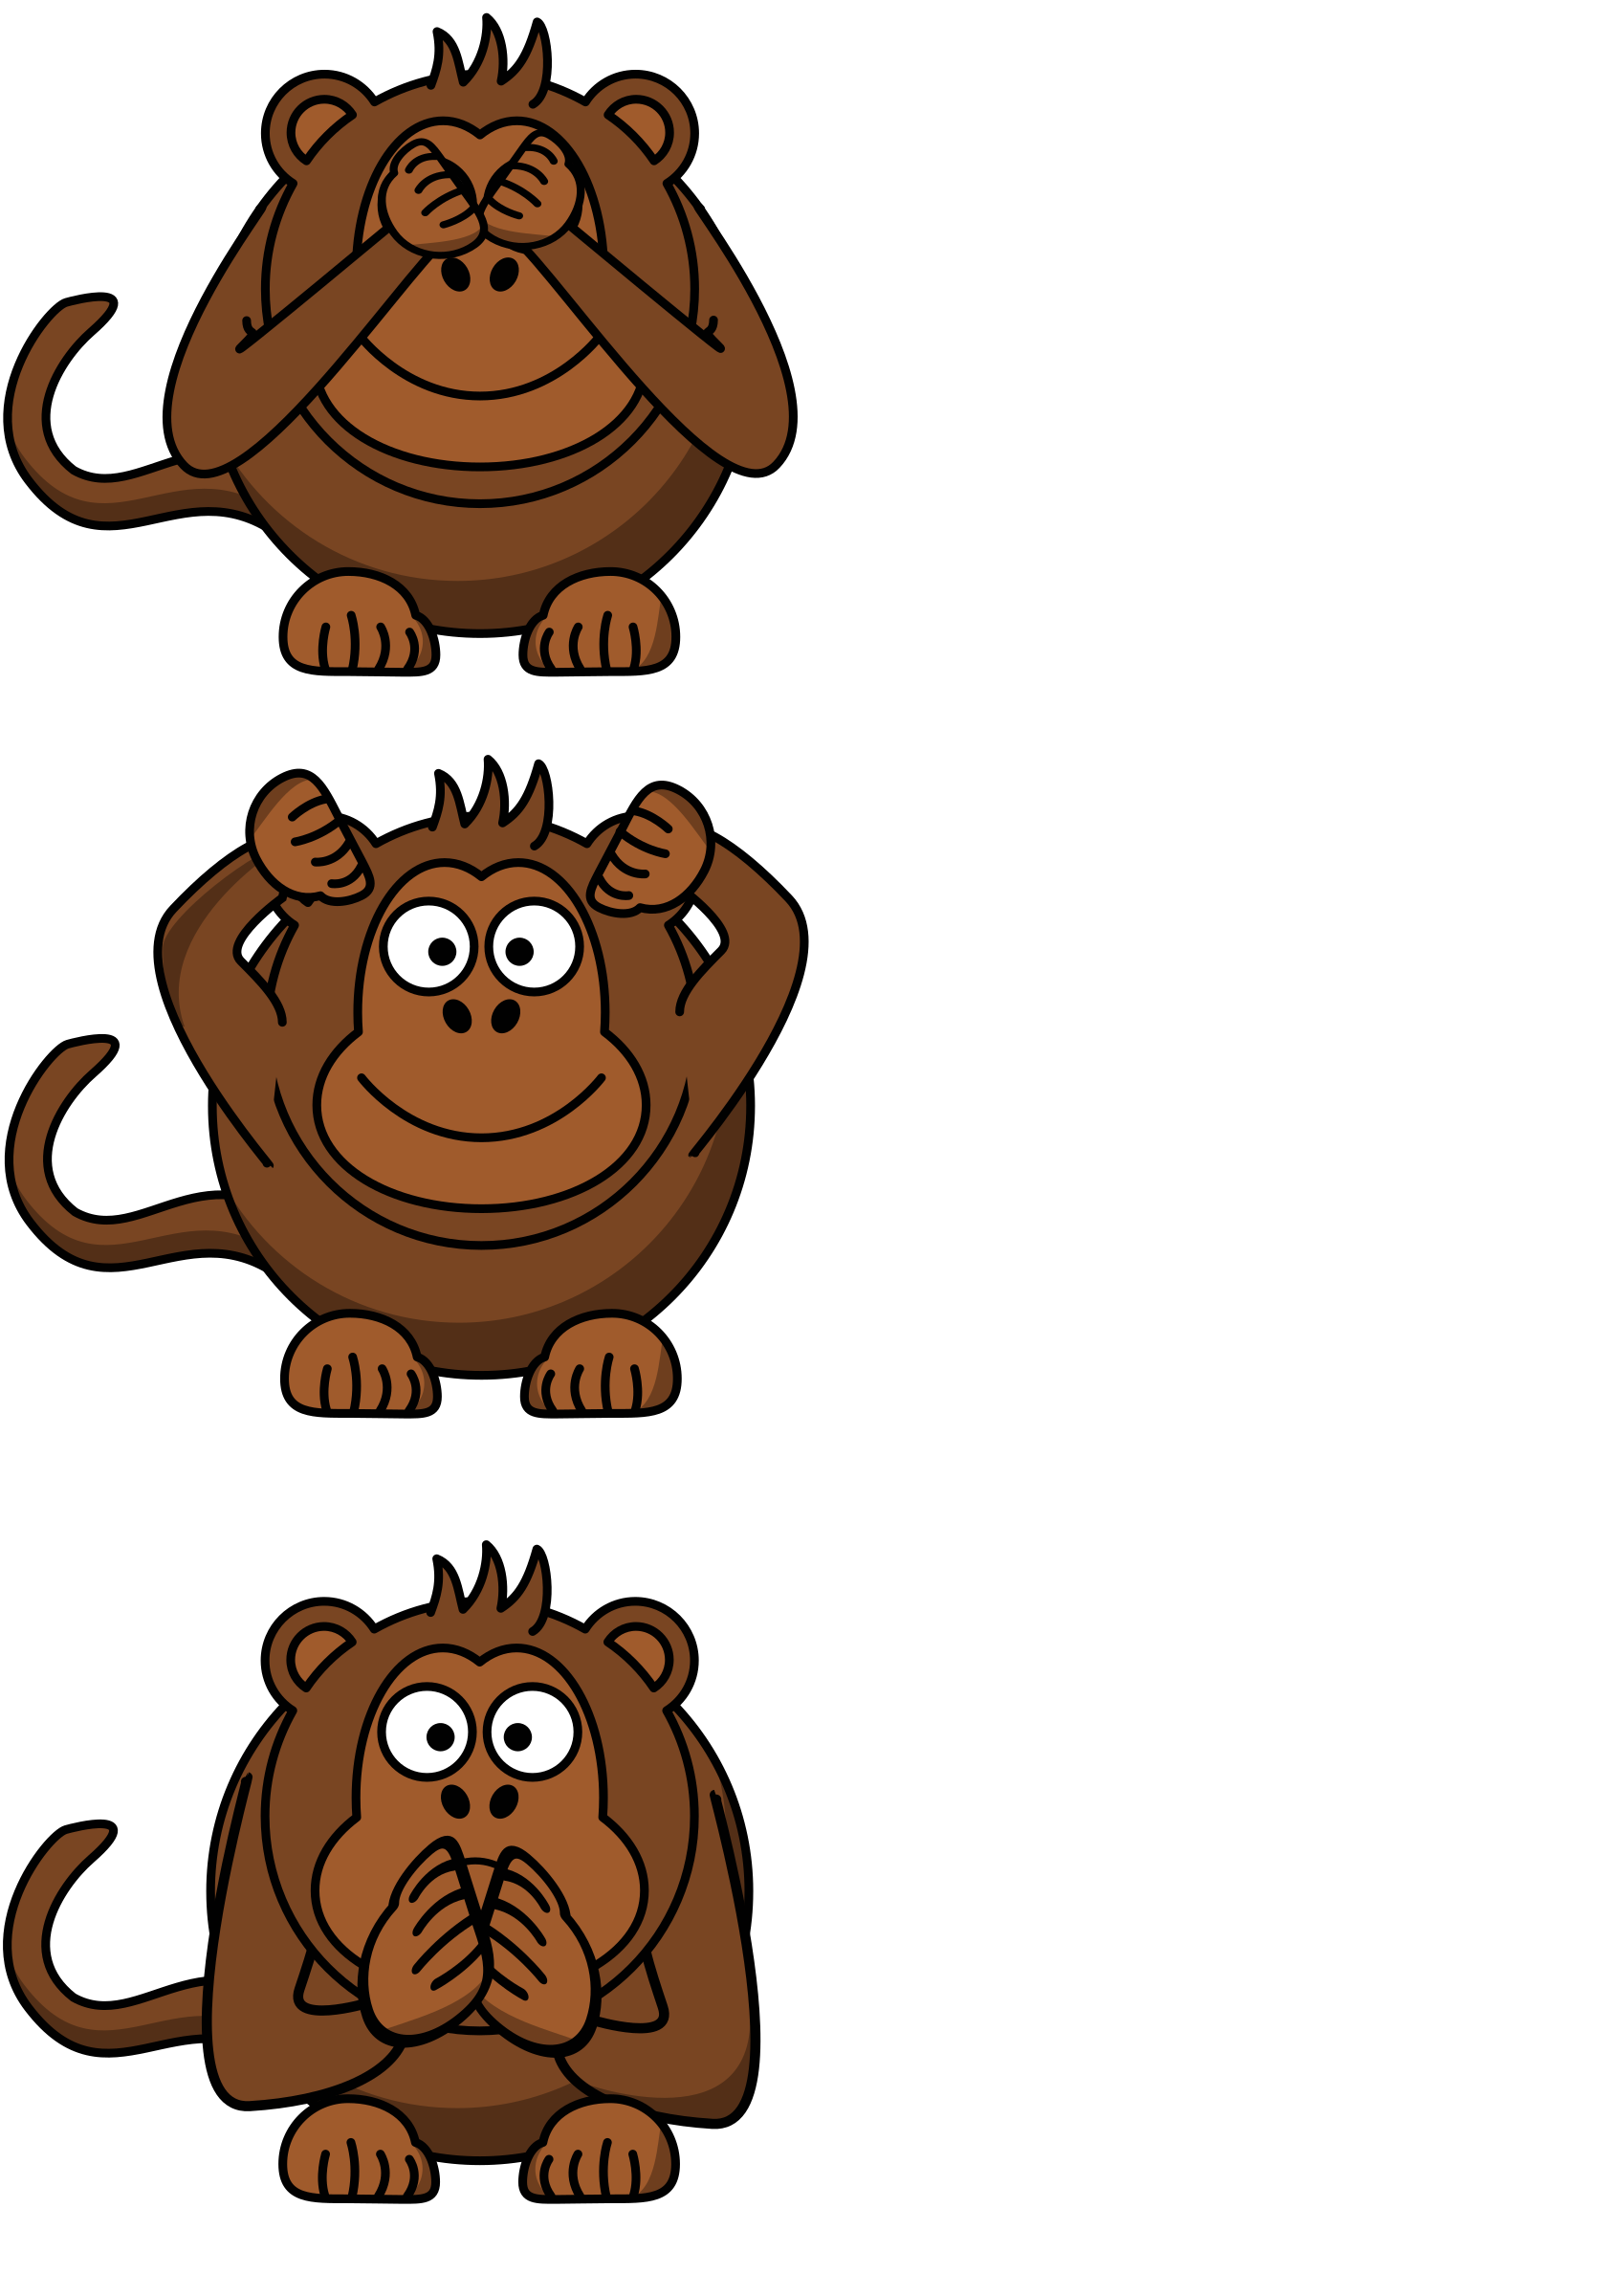 clipart see hear speak no evil monkey rh openclipart org heart clipart no background heart clipart no background